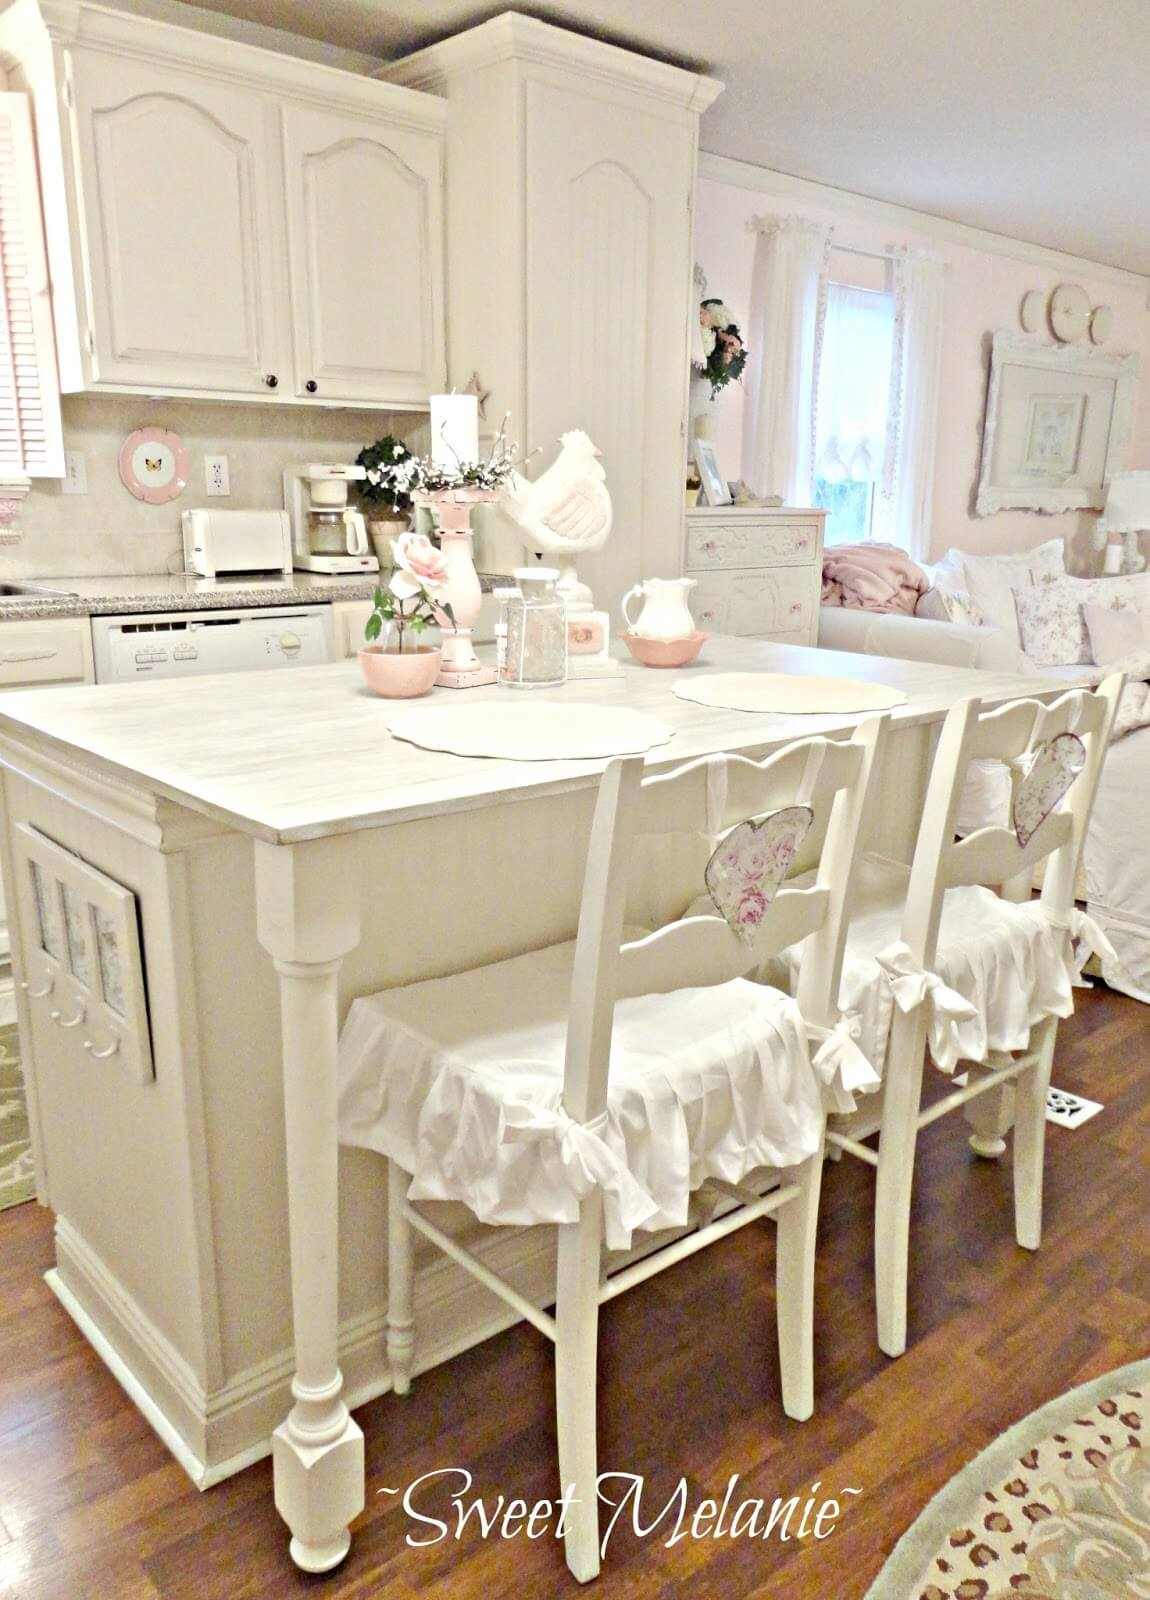 1. Cream Colored Cabinets And Ruffled Seat Covers